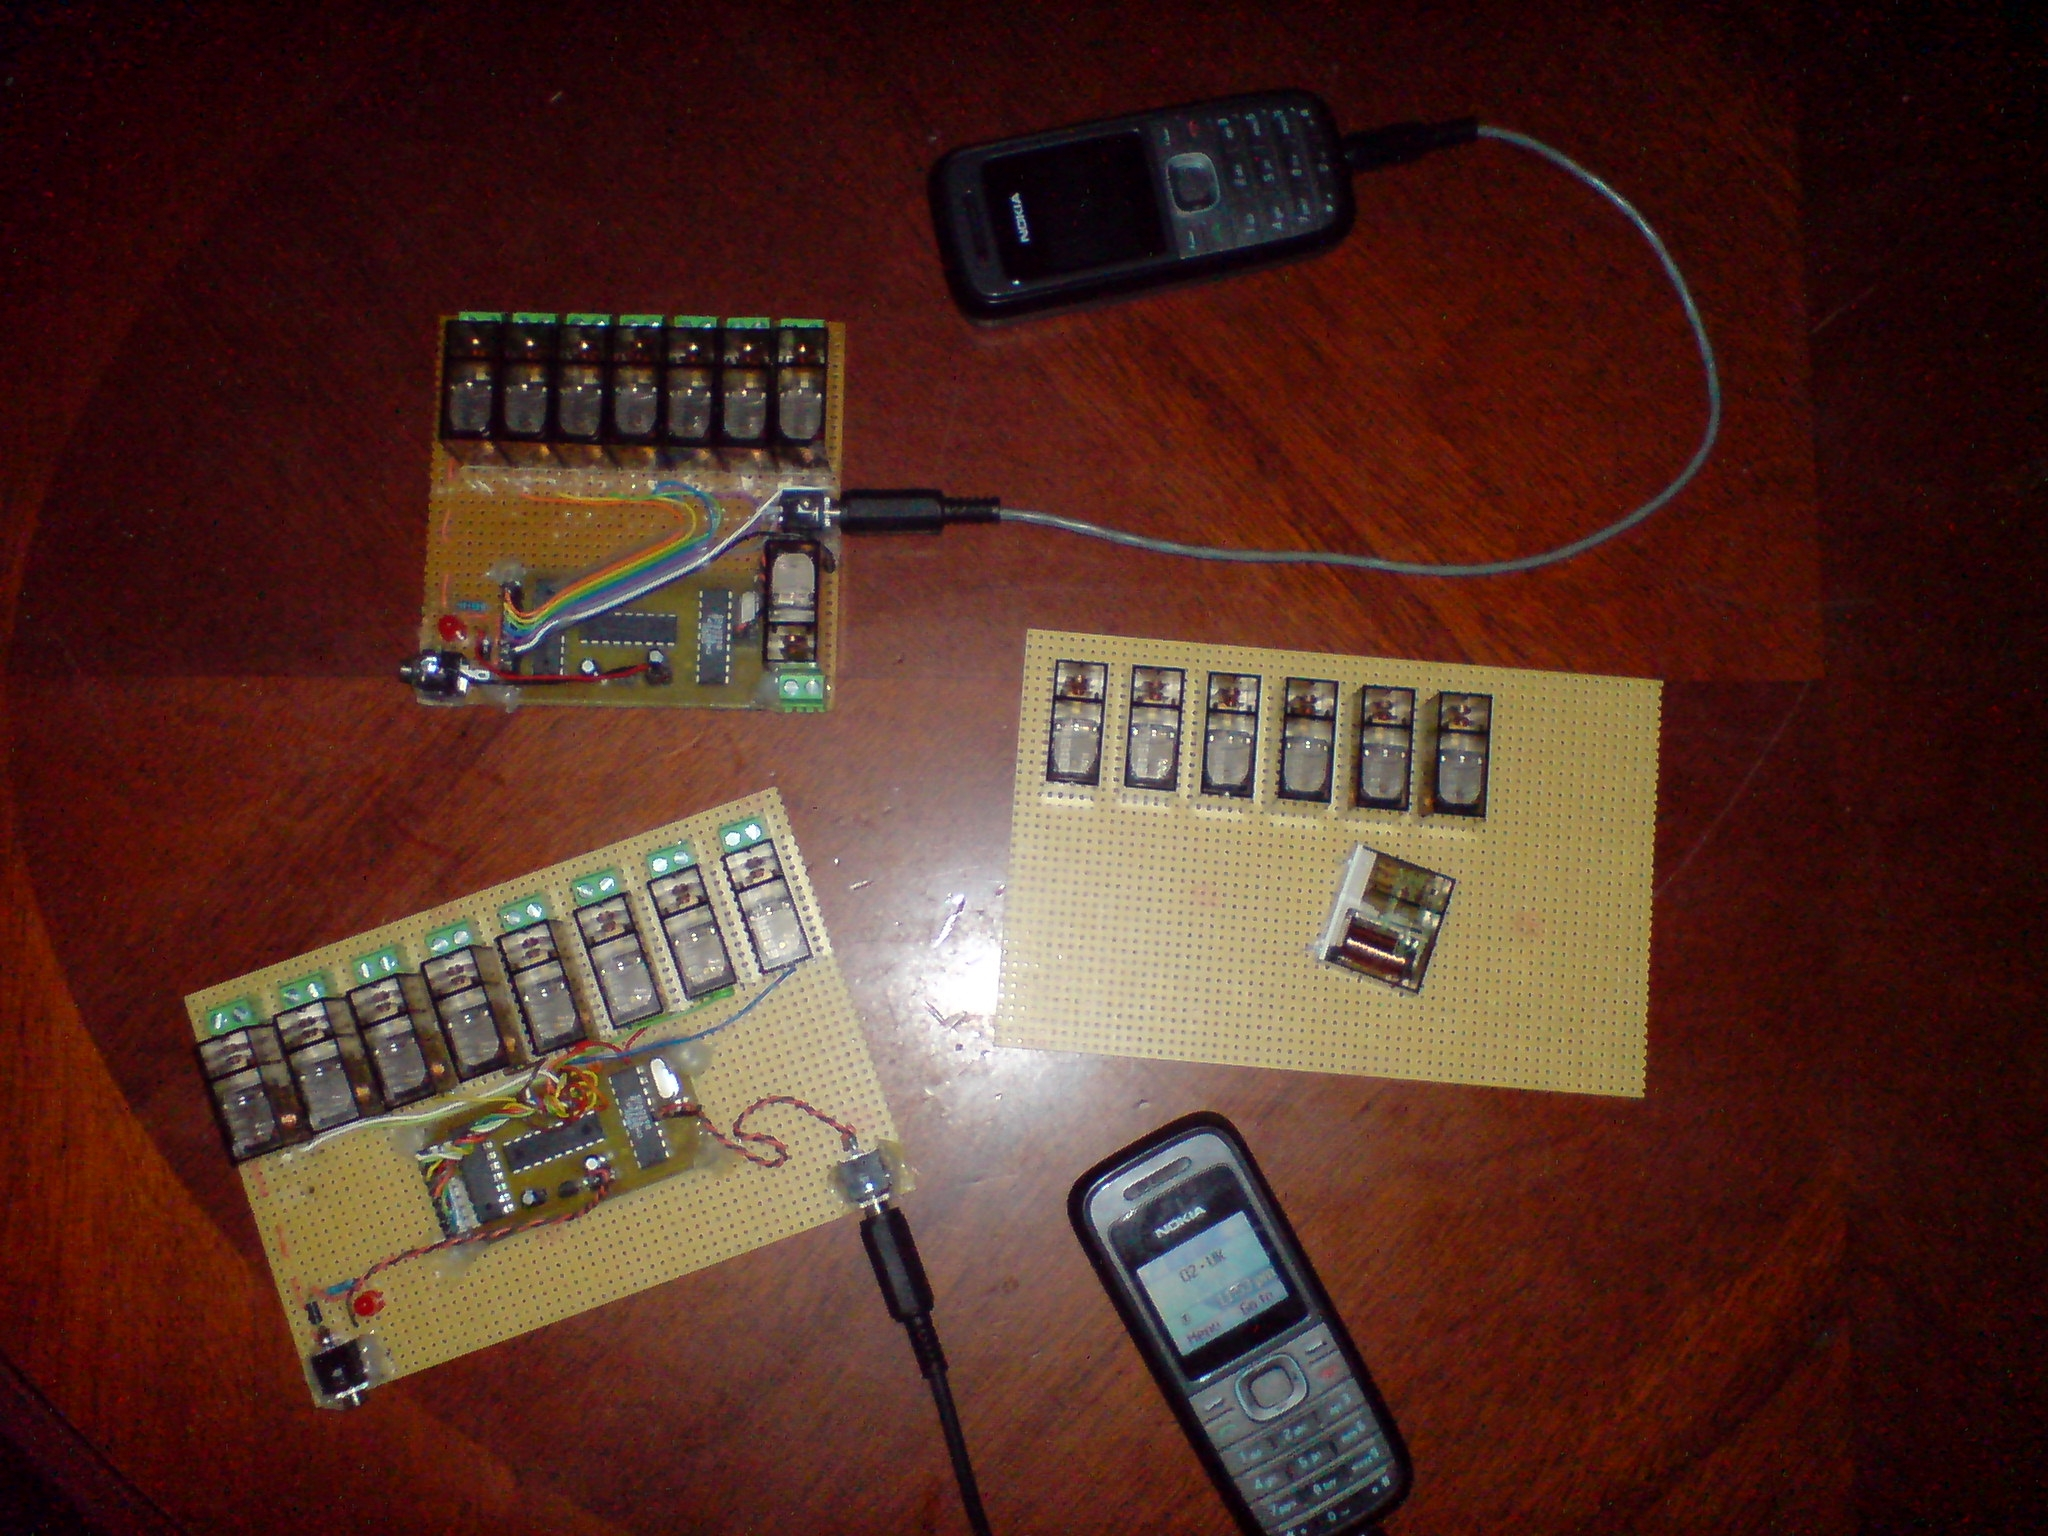 Welcome To This Second Part Of How Build A Simple Cell Phone 8 Relay Control Circuit Now If You Would Like See The Finished Unit Working I Have Fixed Lamp Channel One Will Flash As Turned Ringer Off